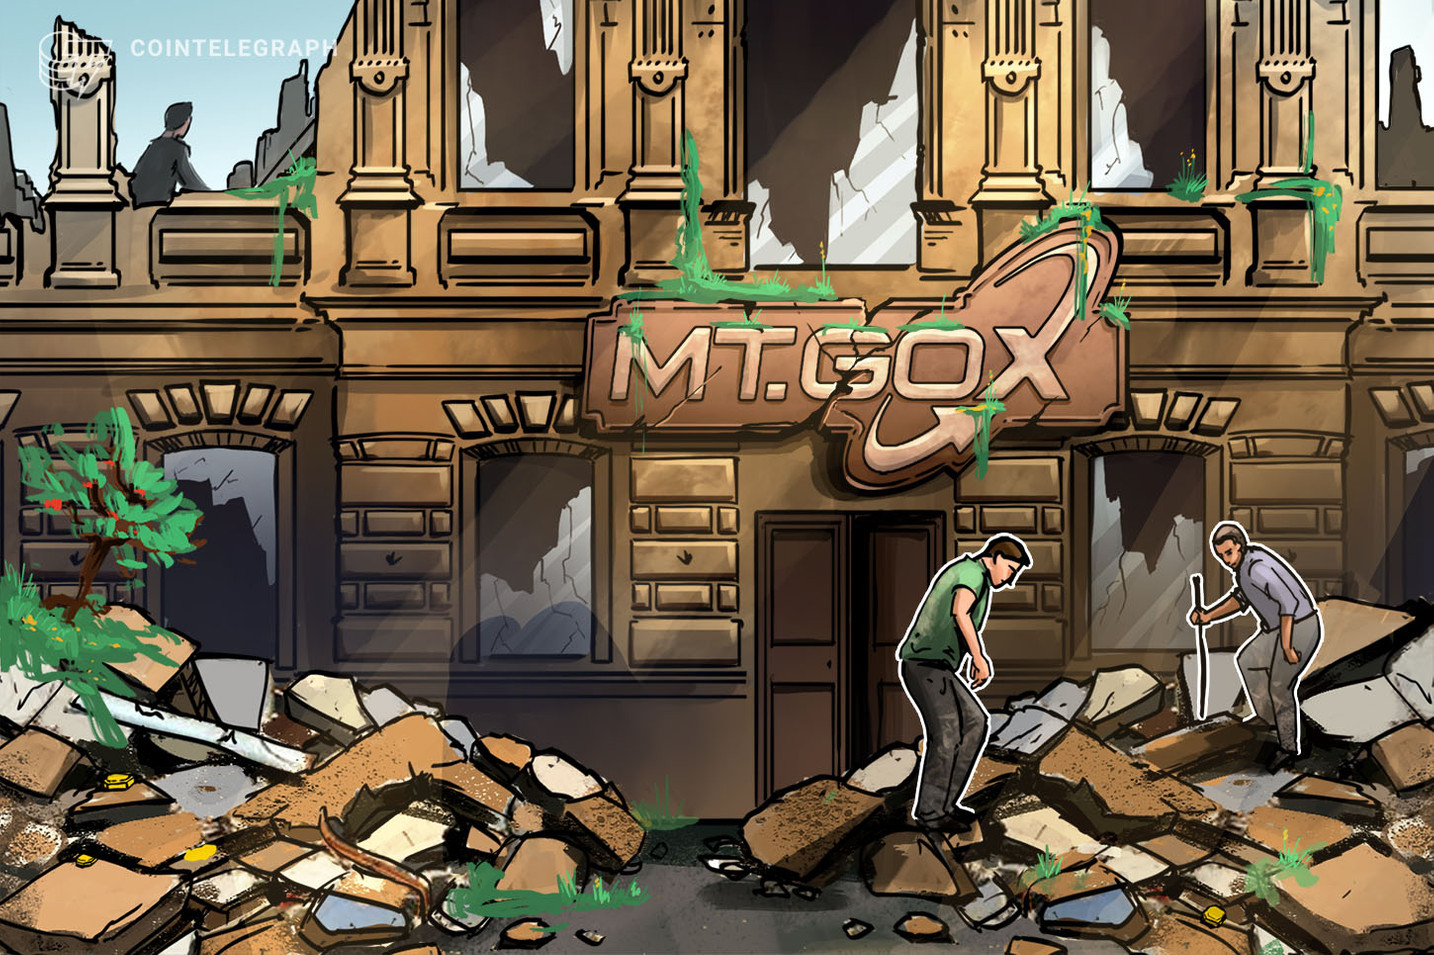 Deadline for Mt. Gox trustee rehabilitation plan extended again